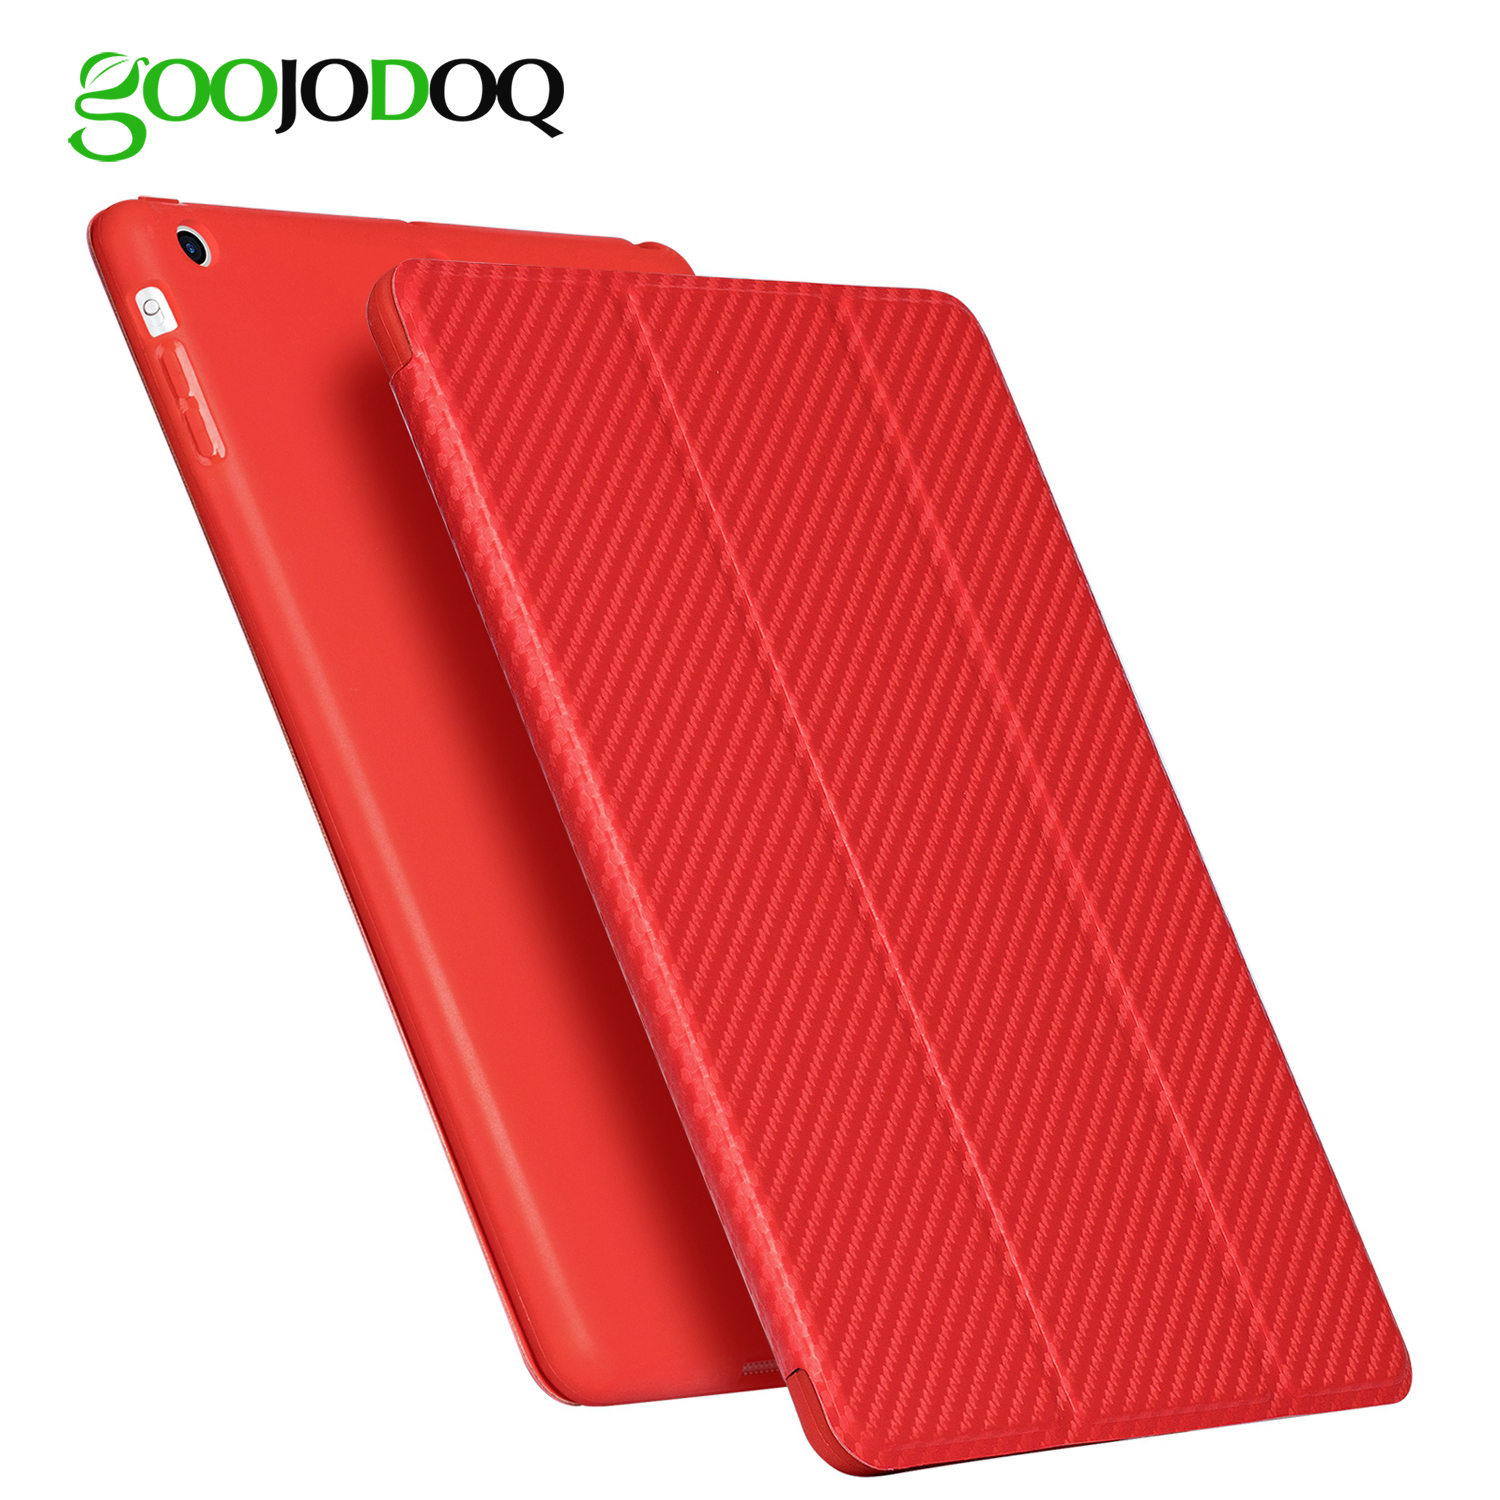 GOOJODOQ Cover for iPad Mini Case Silicone Soft Back for Apple iPad Mini 4 Case 7.9 inch Carbon Fiber for iPad Mini 4 3 2 1 Case grasale for meizu m3s mini m3 mini case soft slim silicone matte protective back cover cases for meizu m3 mini full cover